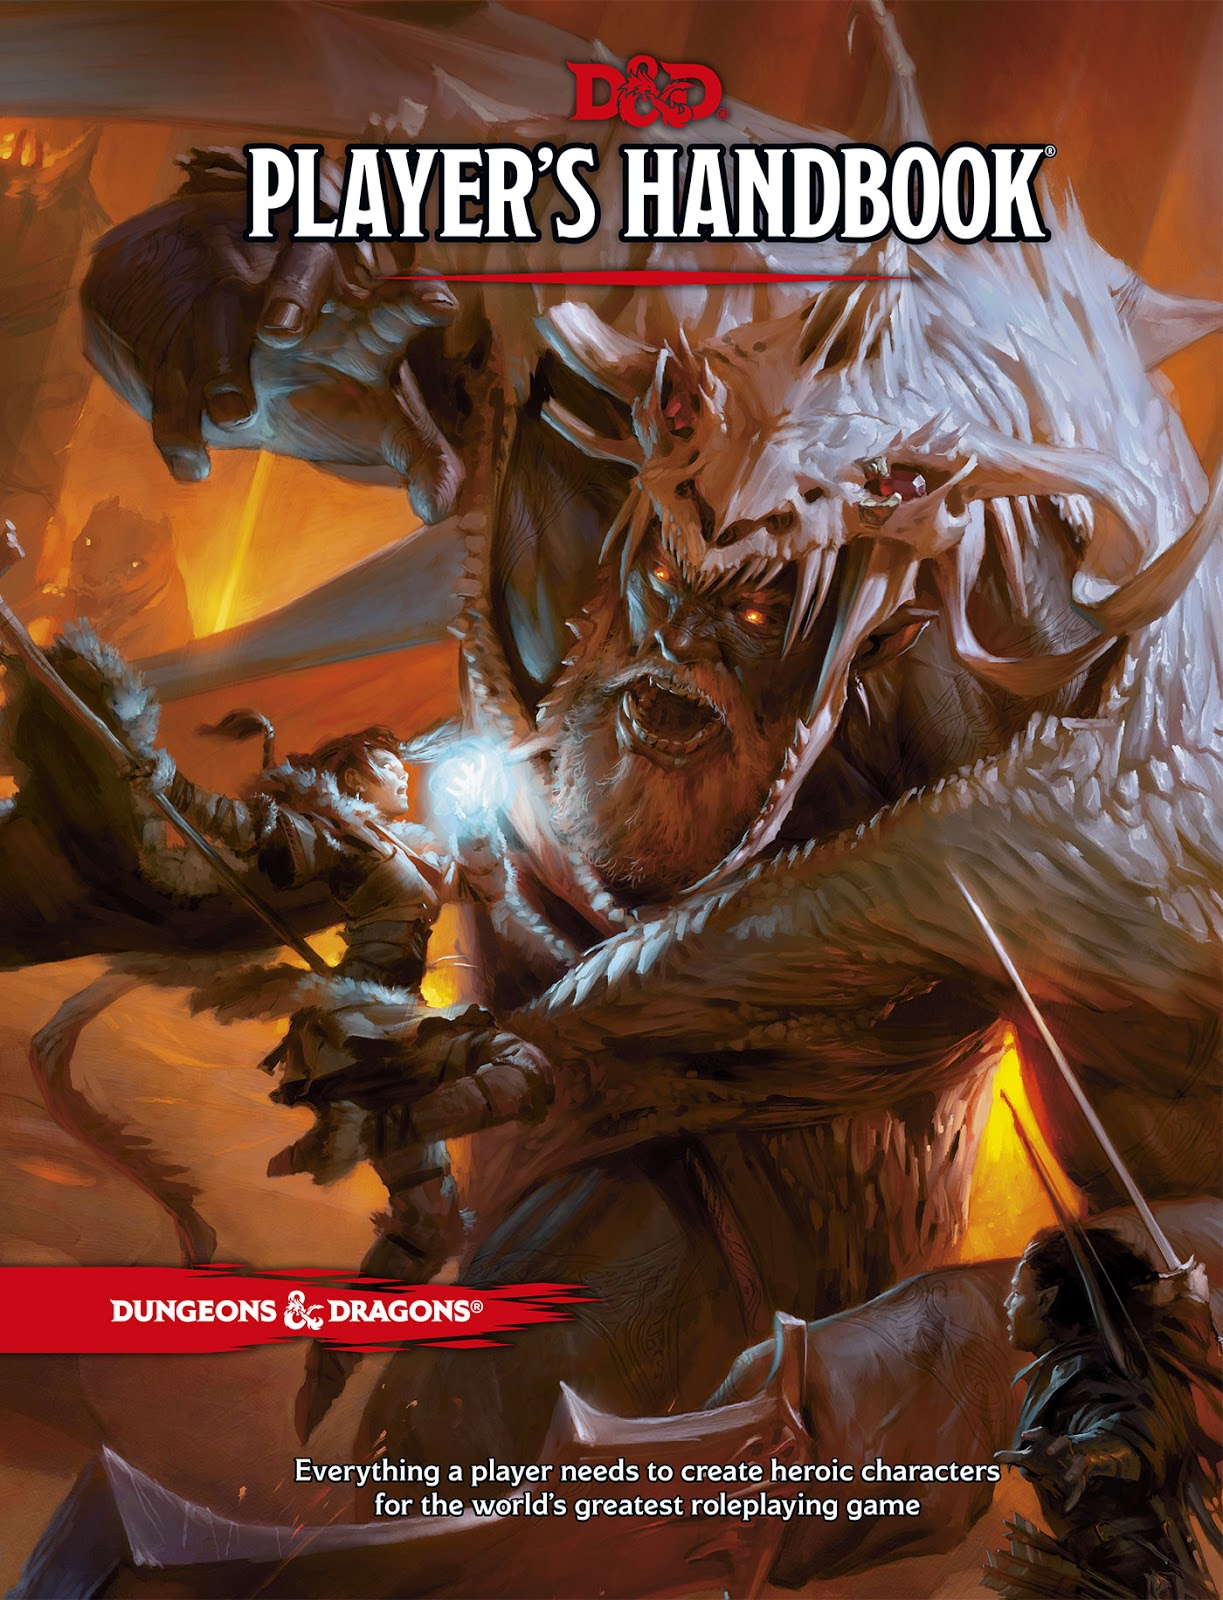 http://www.rebel.pl/category.php/1,2054/Dungeons-Dragons-5.0.html